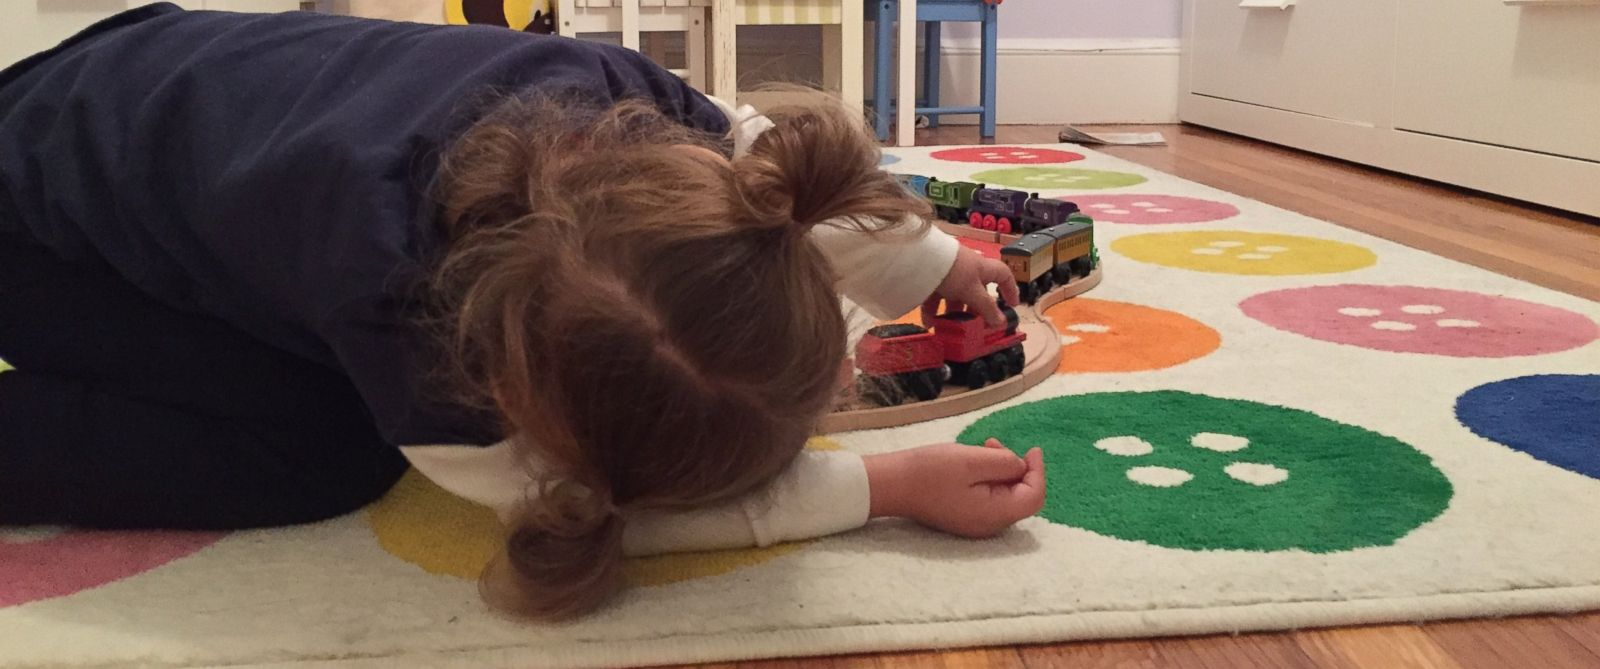 PHOTO: Rebecca Binder and Amanda Laws daughter is seen here playing with Thomas & Friends trains.